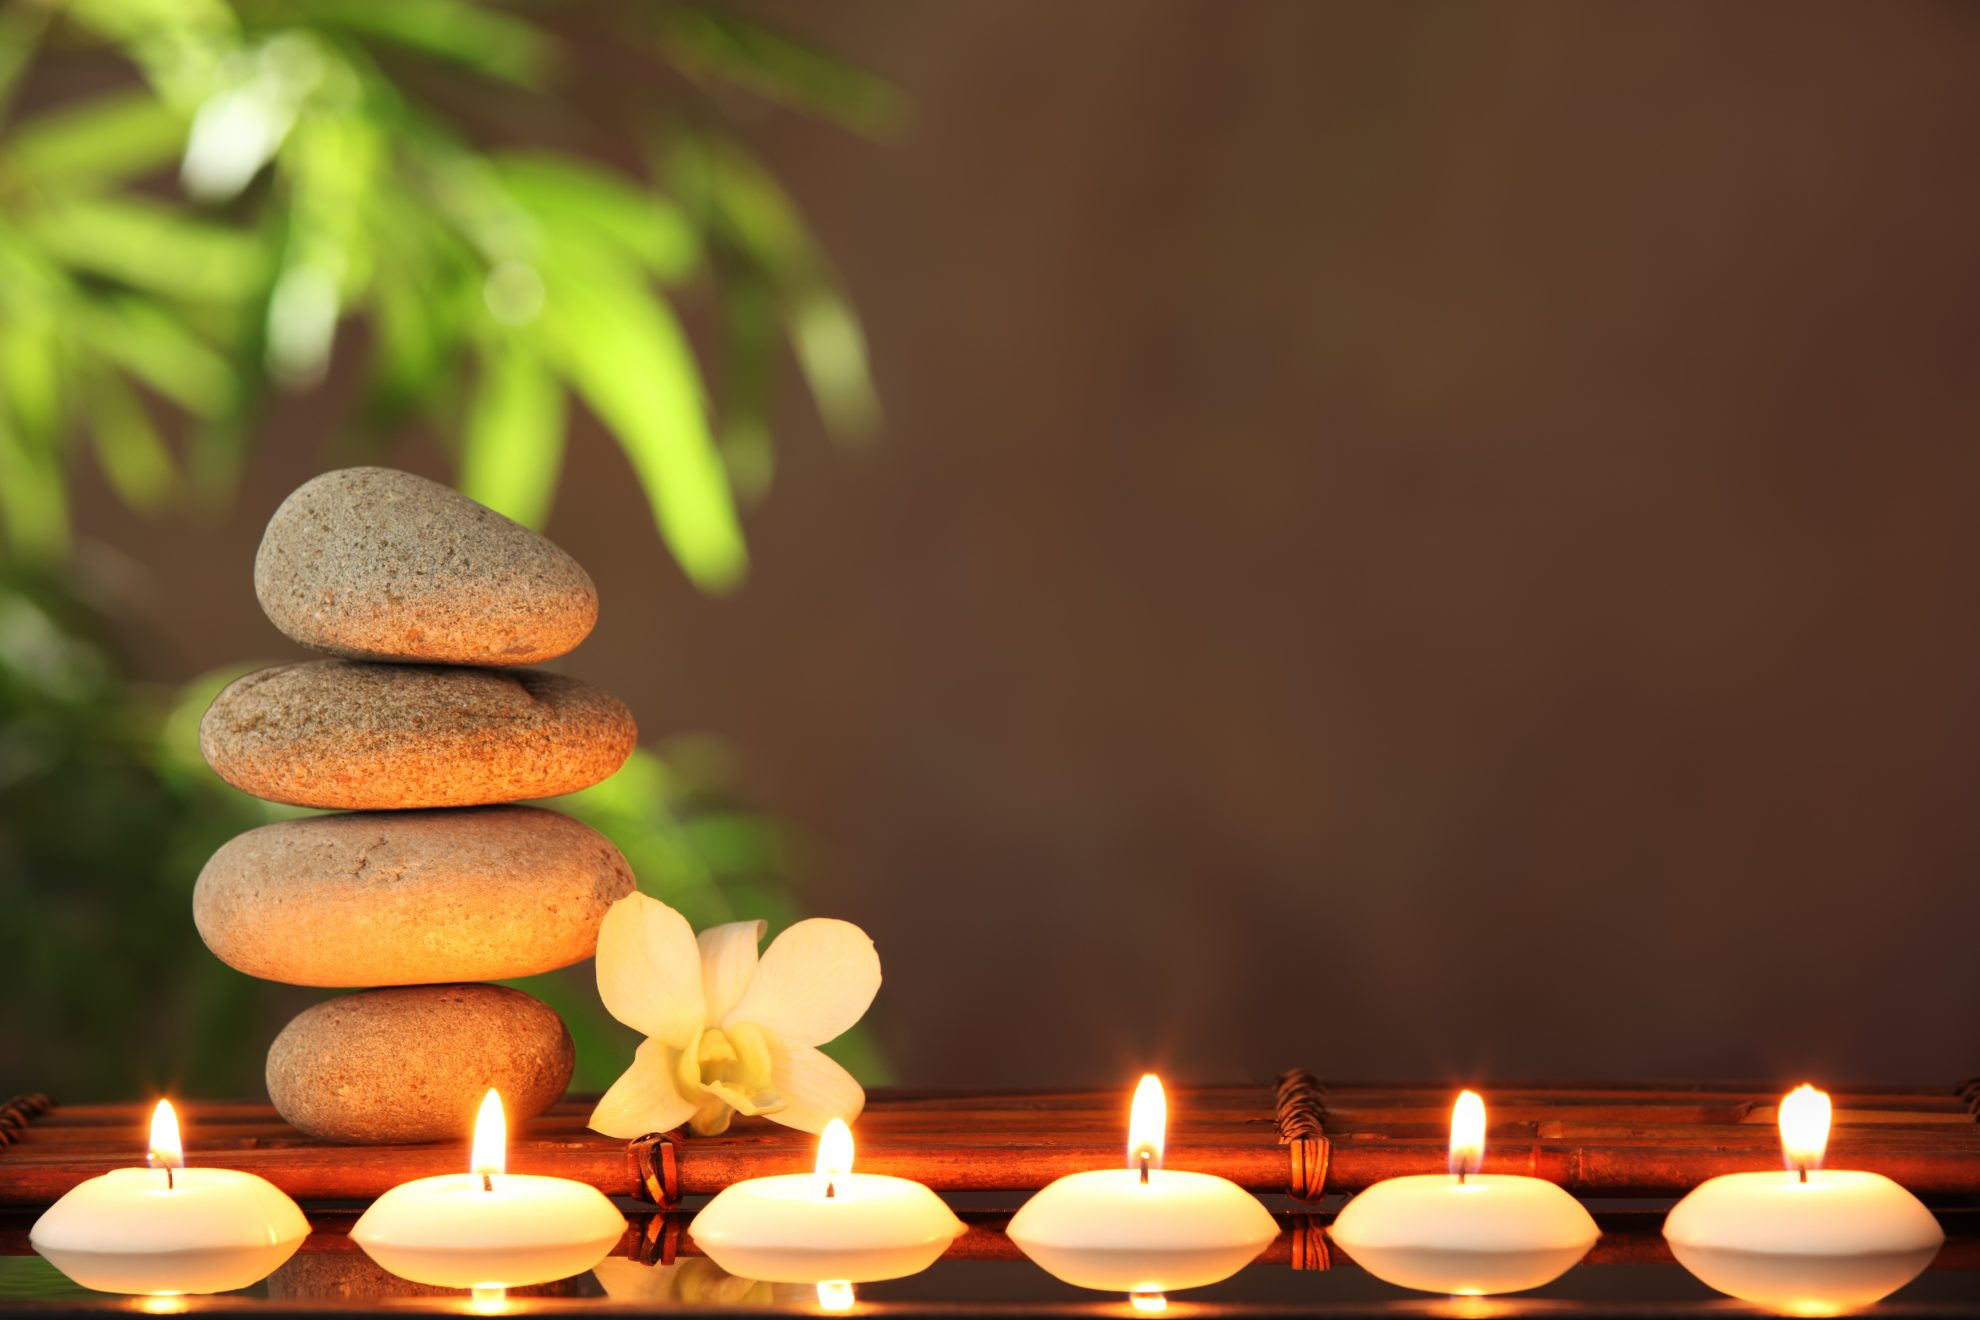 Relaxing photo of stones, candles, and orchids representing Reiki